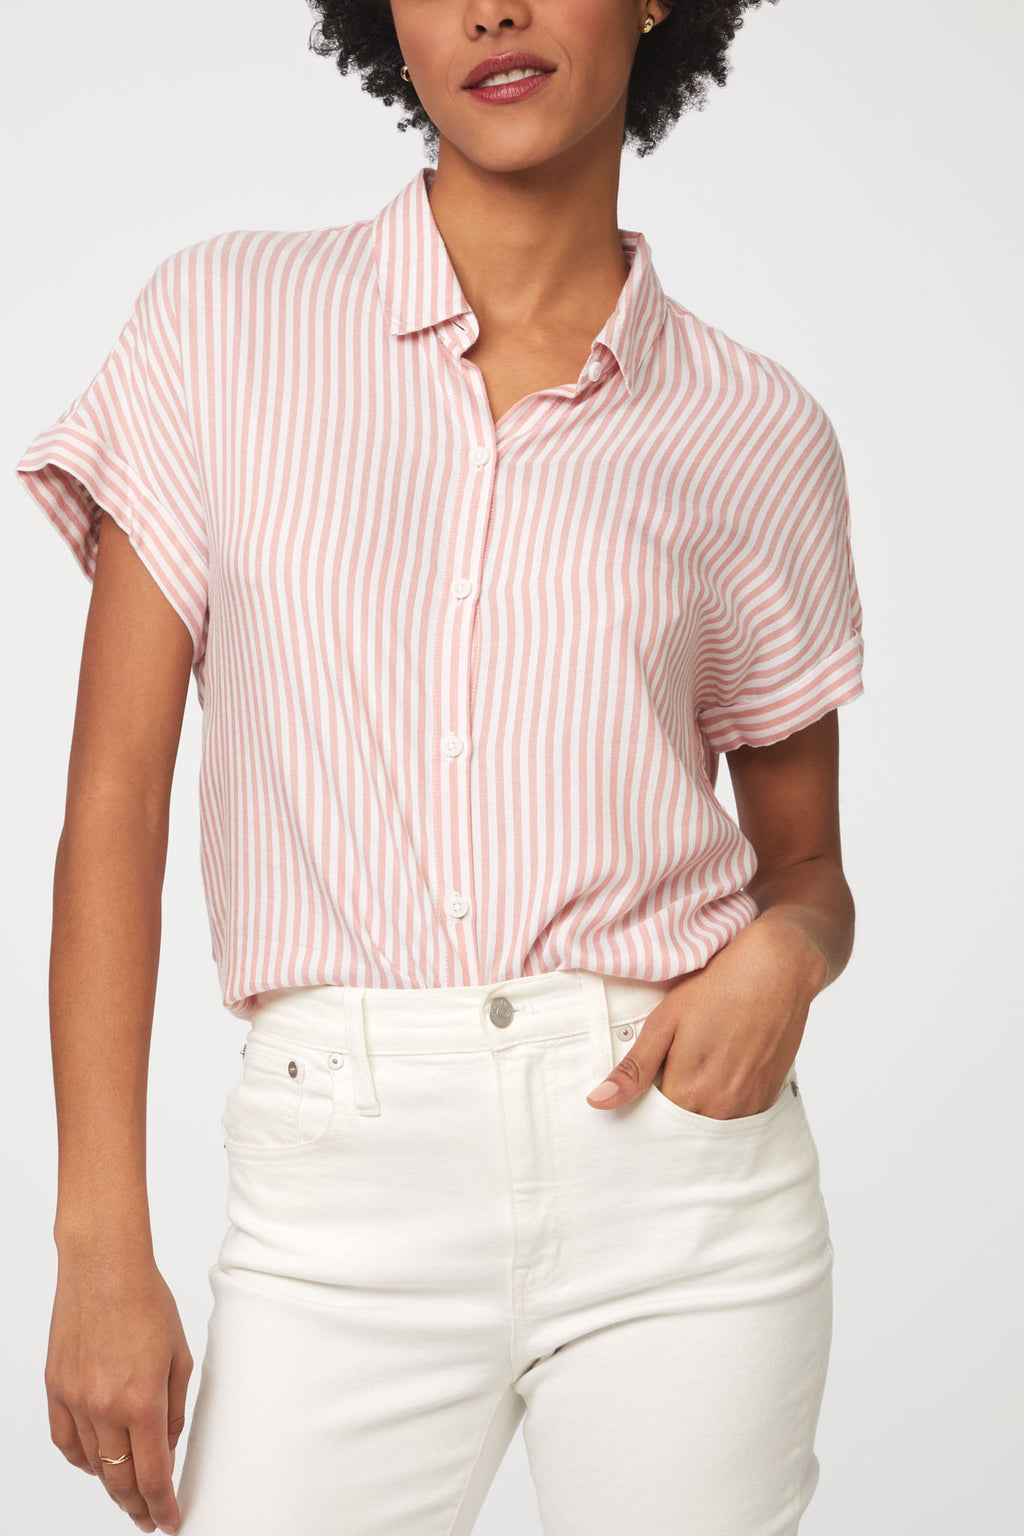 Striped Pink Button Up Blouse by beach lunch lounge